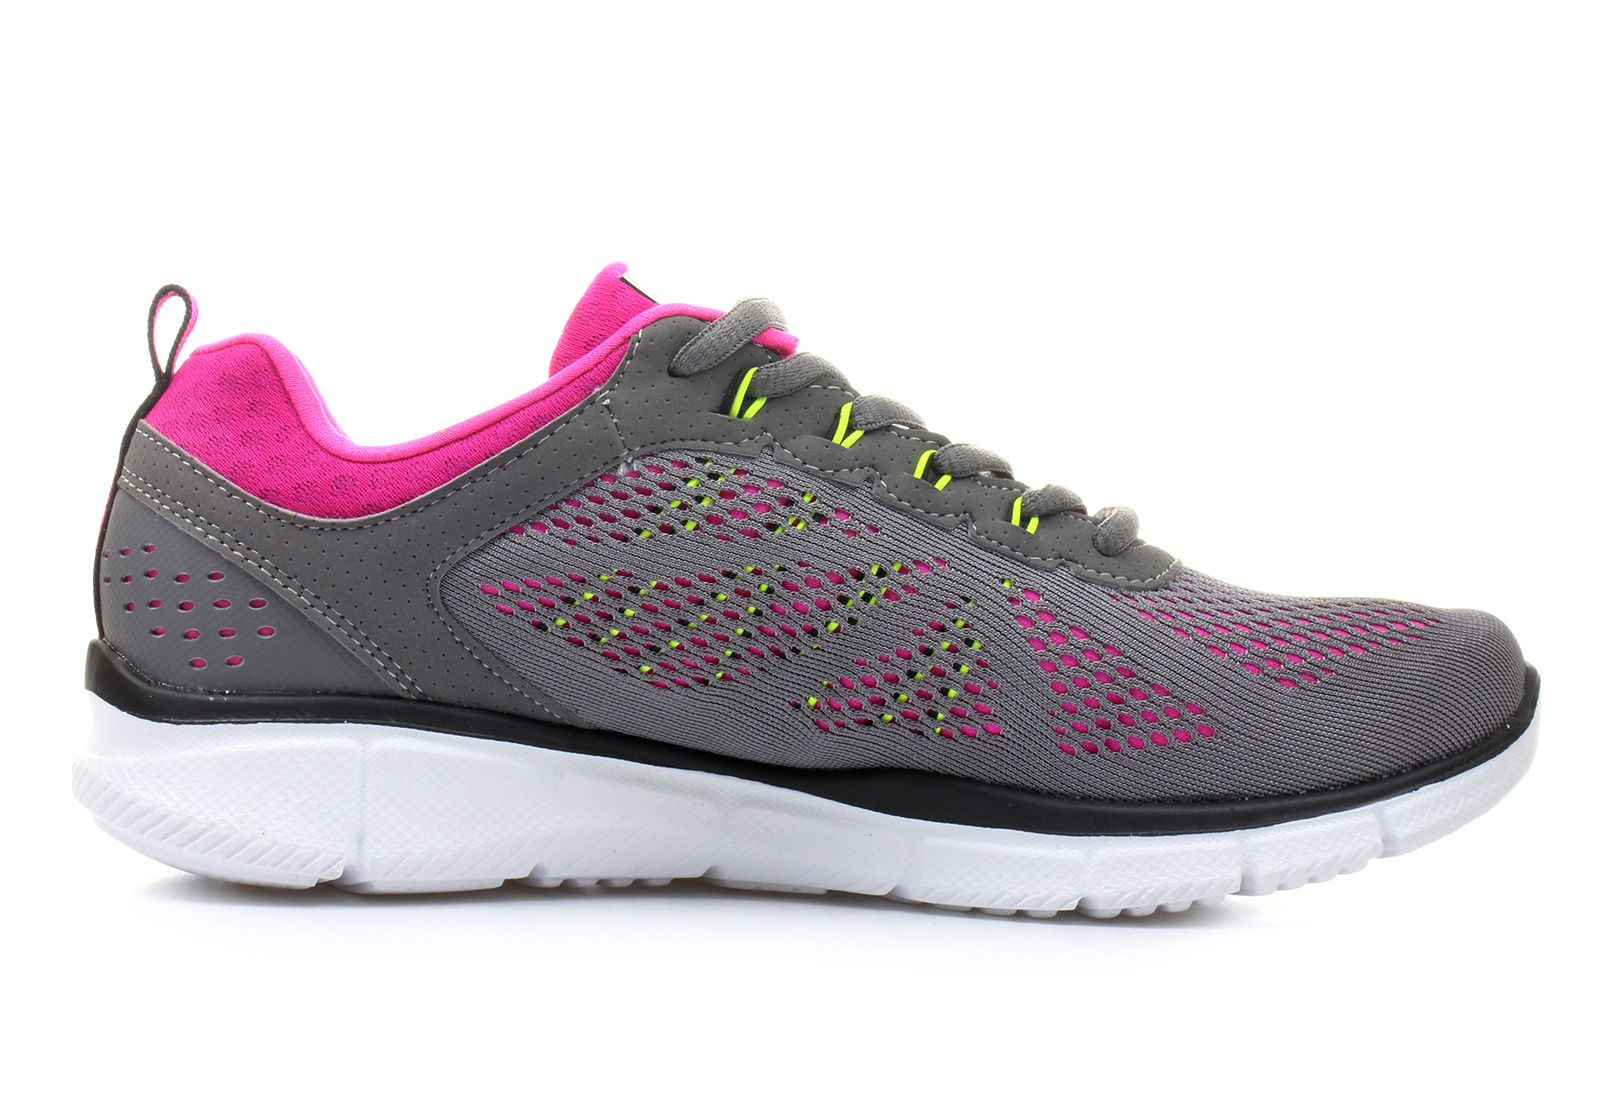 Super Shoes: Womens Athletics, Casuals, Dress, Work, Safety & Hiking Shoes and Boots | Free Shipping Over $75 & Free Returns In-Store.